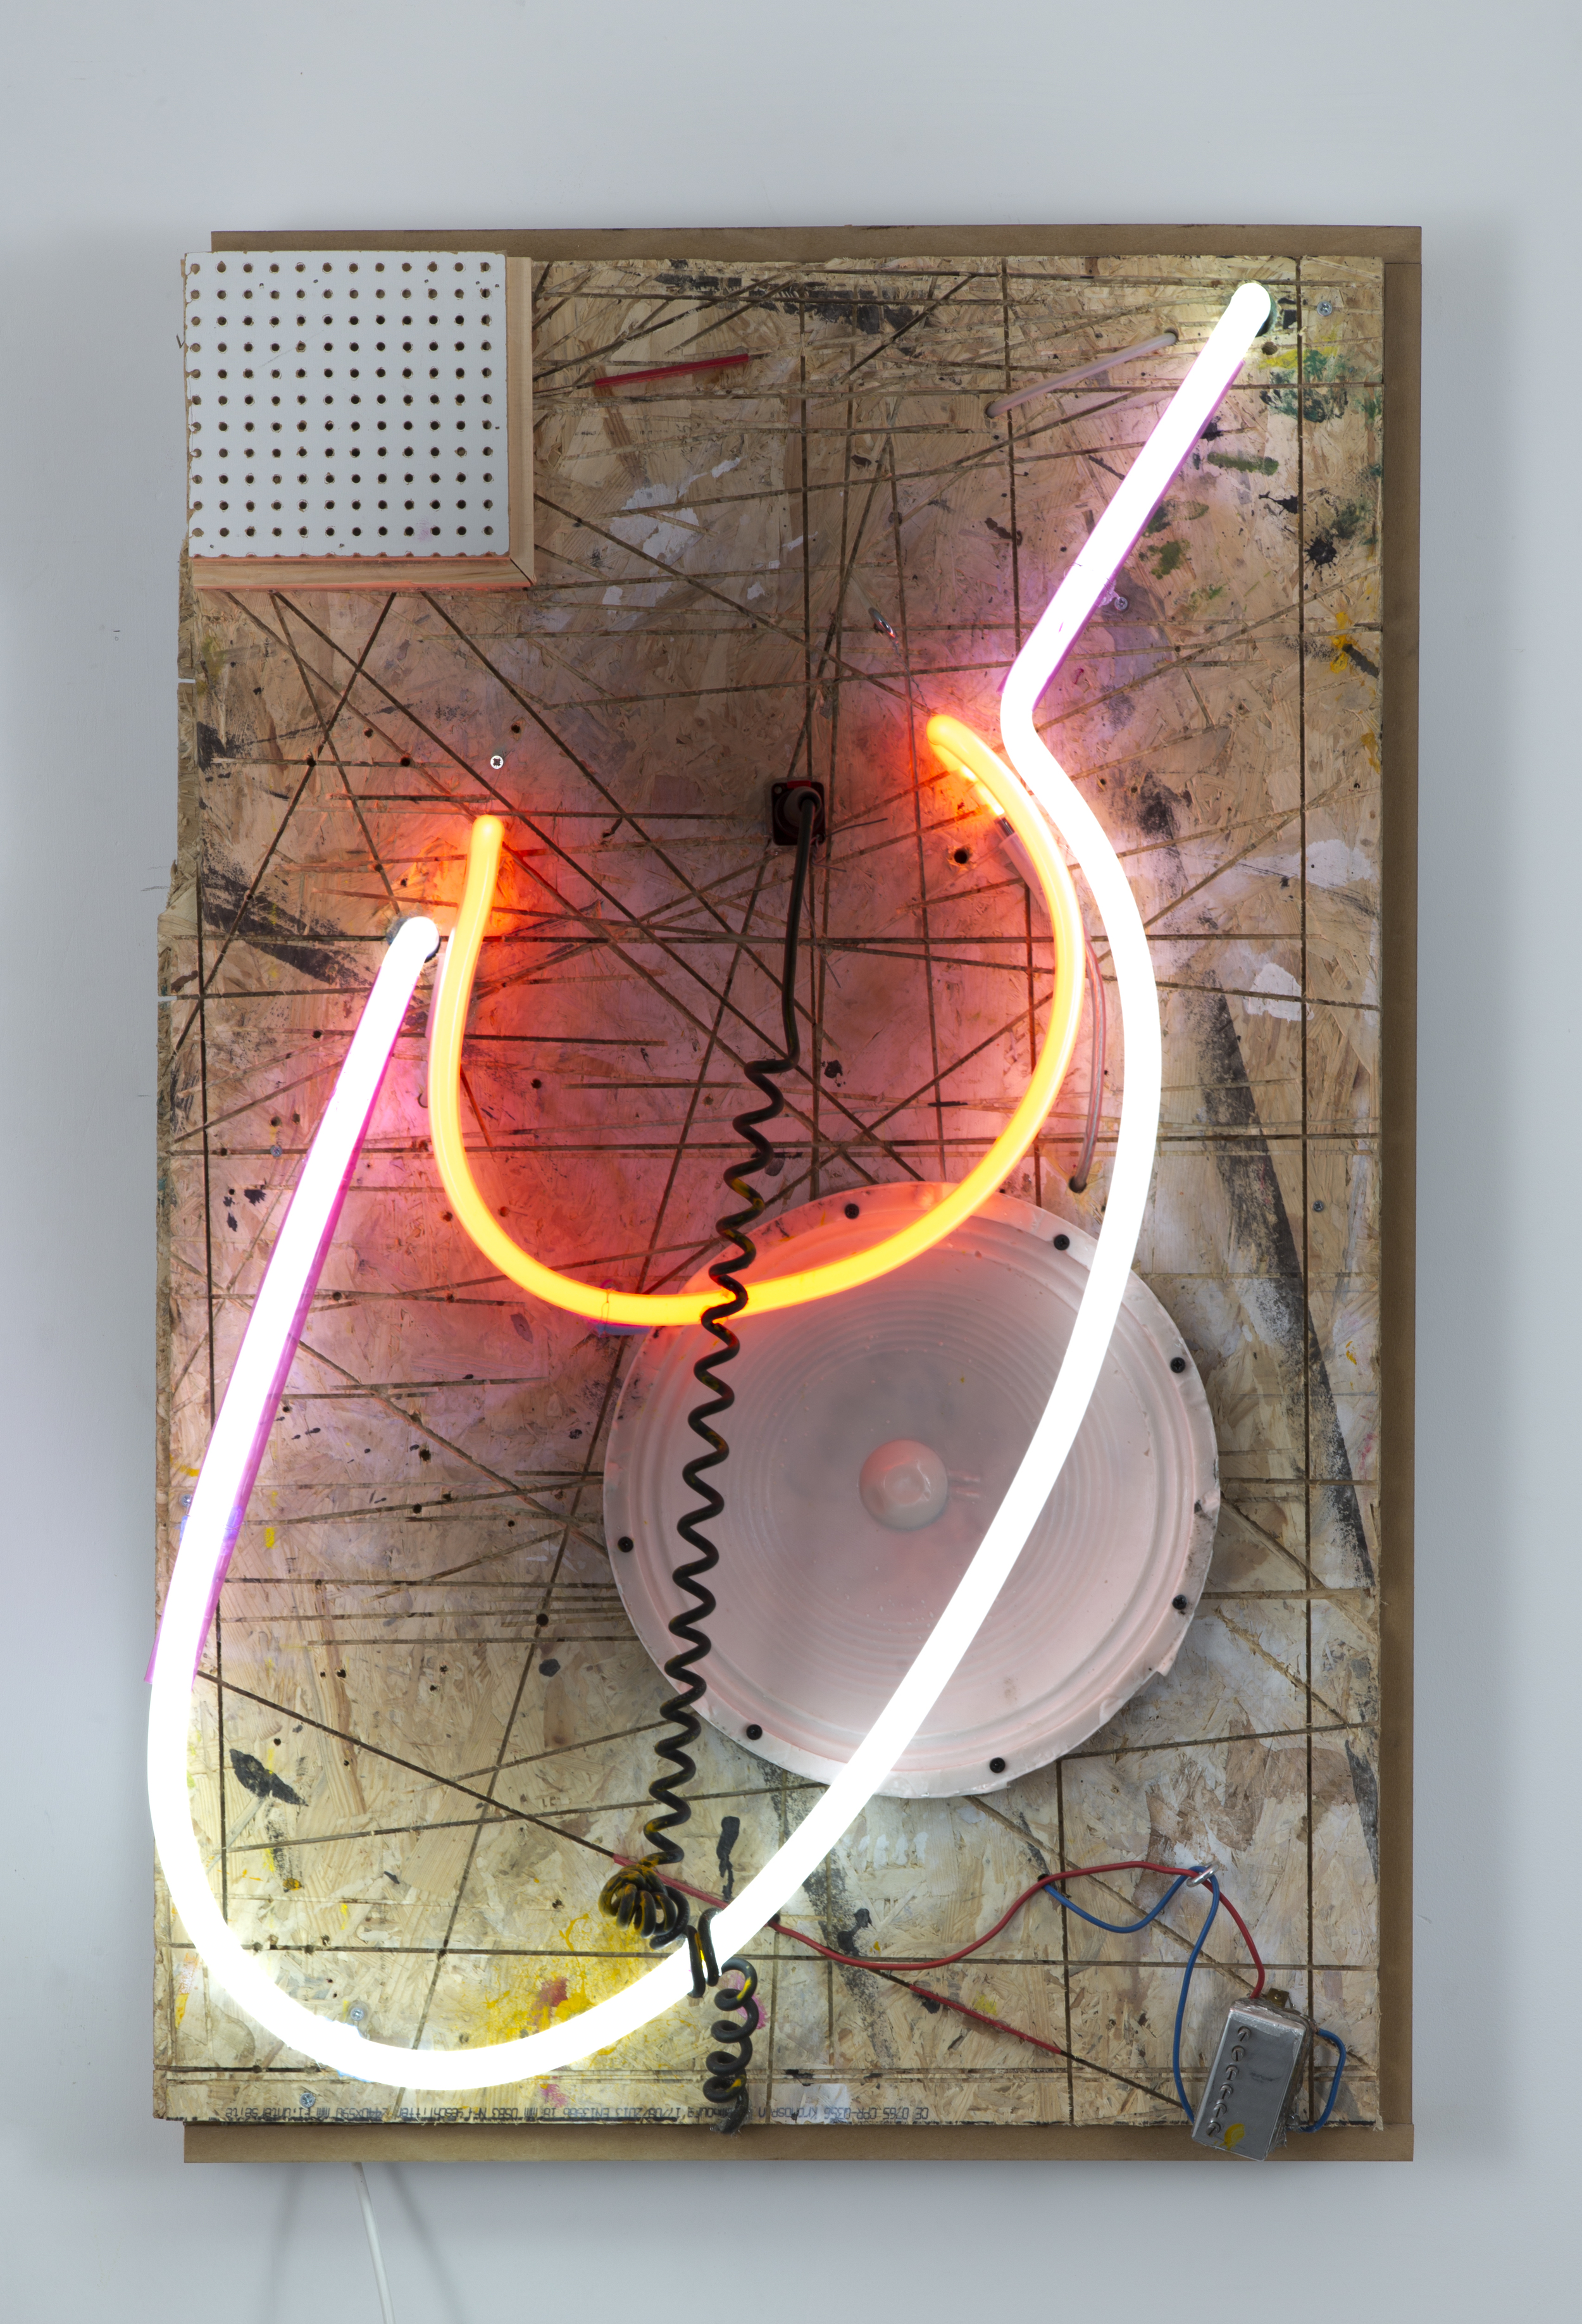 Joris Van de Moortel ,  A sudden gall of unheard-of violence  (2015). 37.8 x 24.4 x 7.8 inches. Neon, wood, resin speaker, microphone, acoustic guitar, cable wound. ( Photo :   ©   WE DOCUMENT ART)